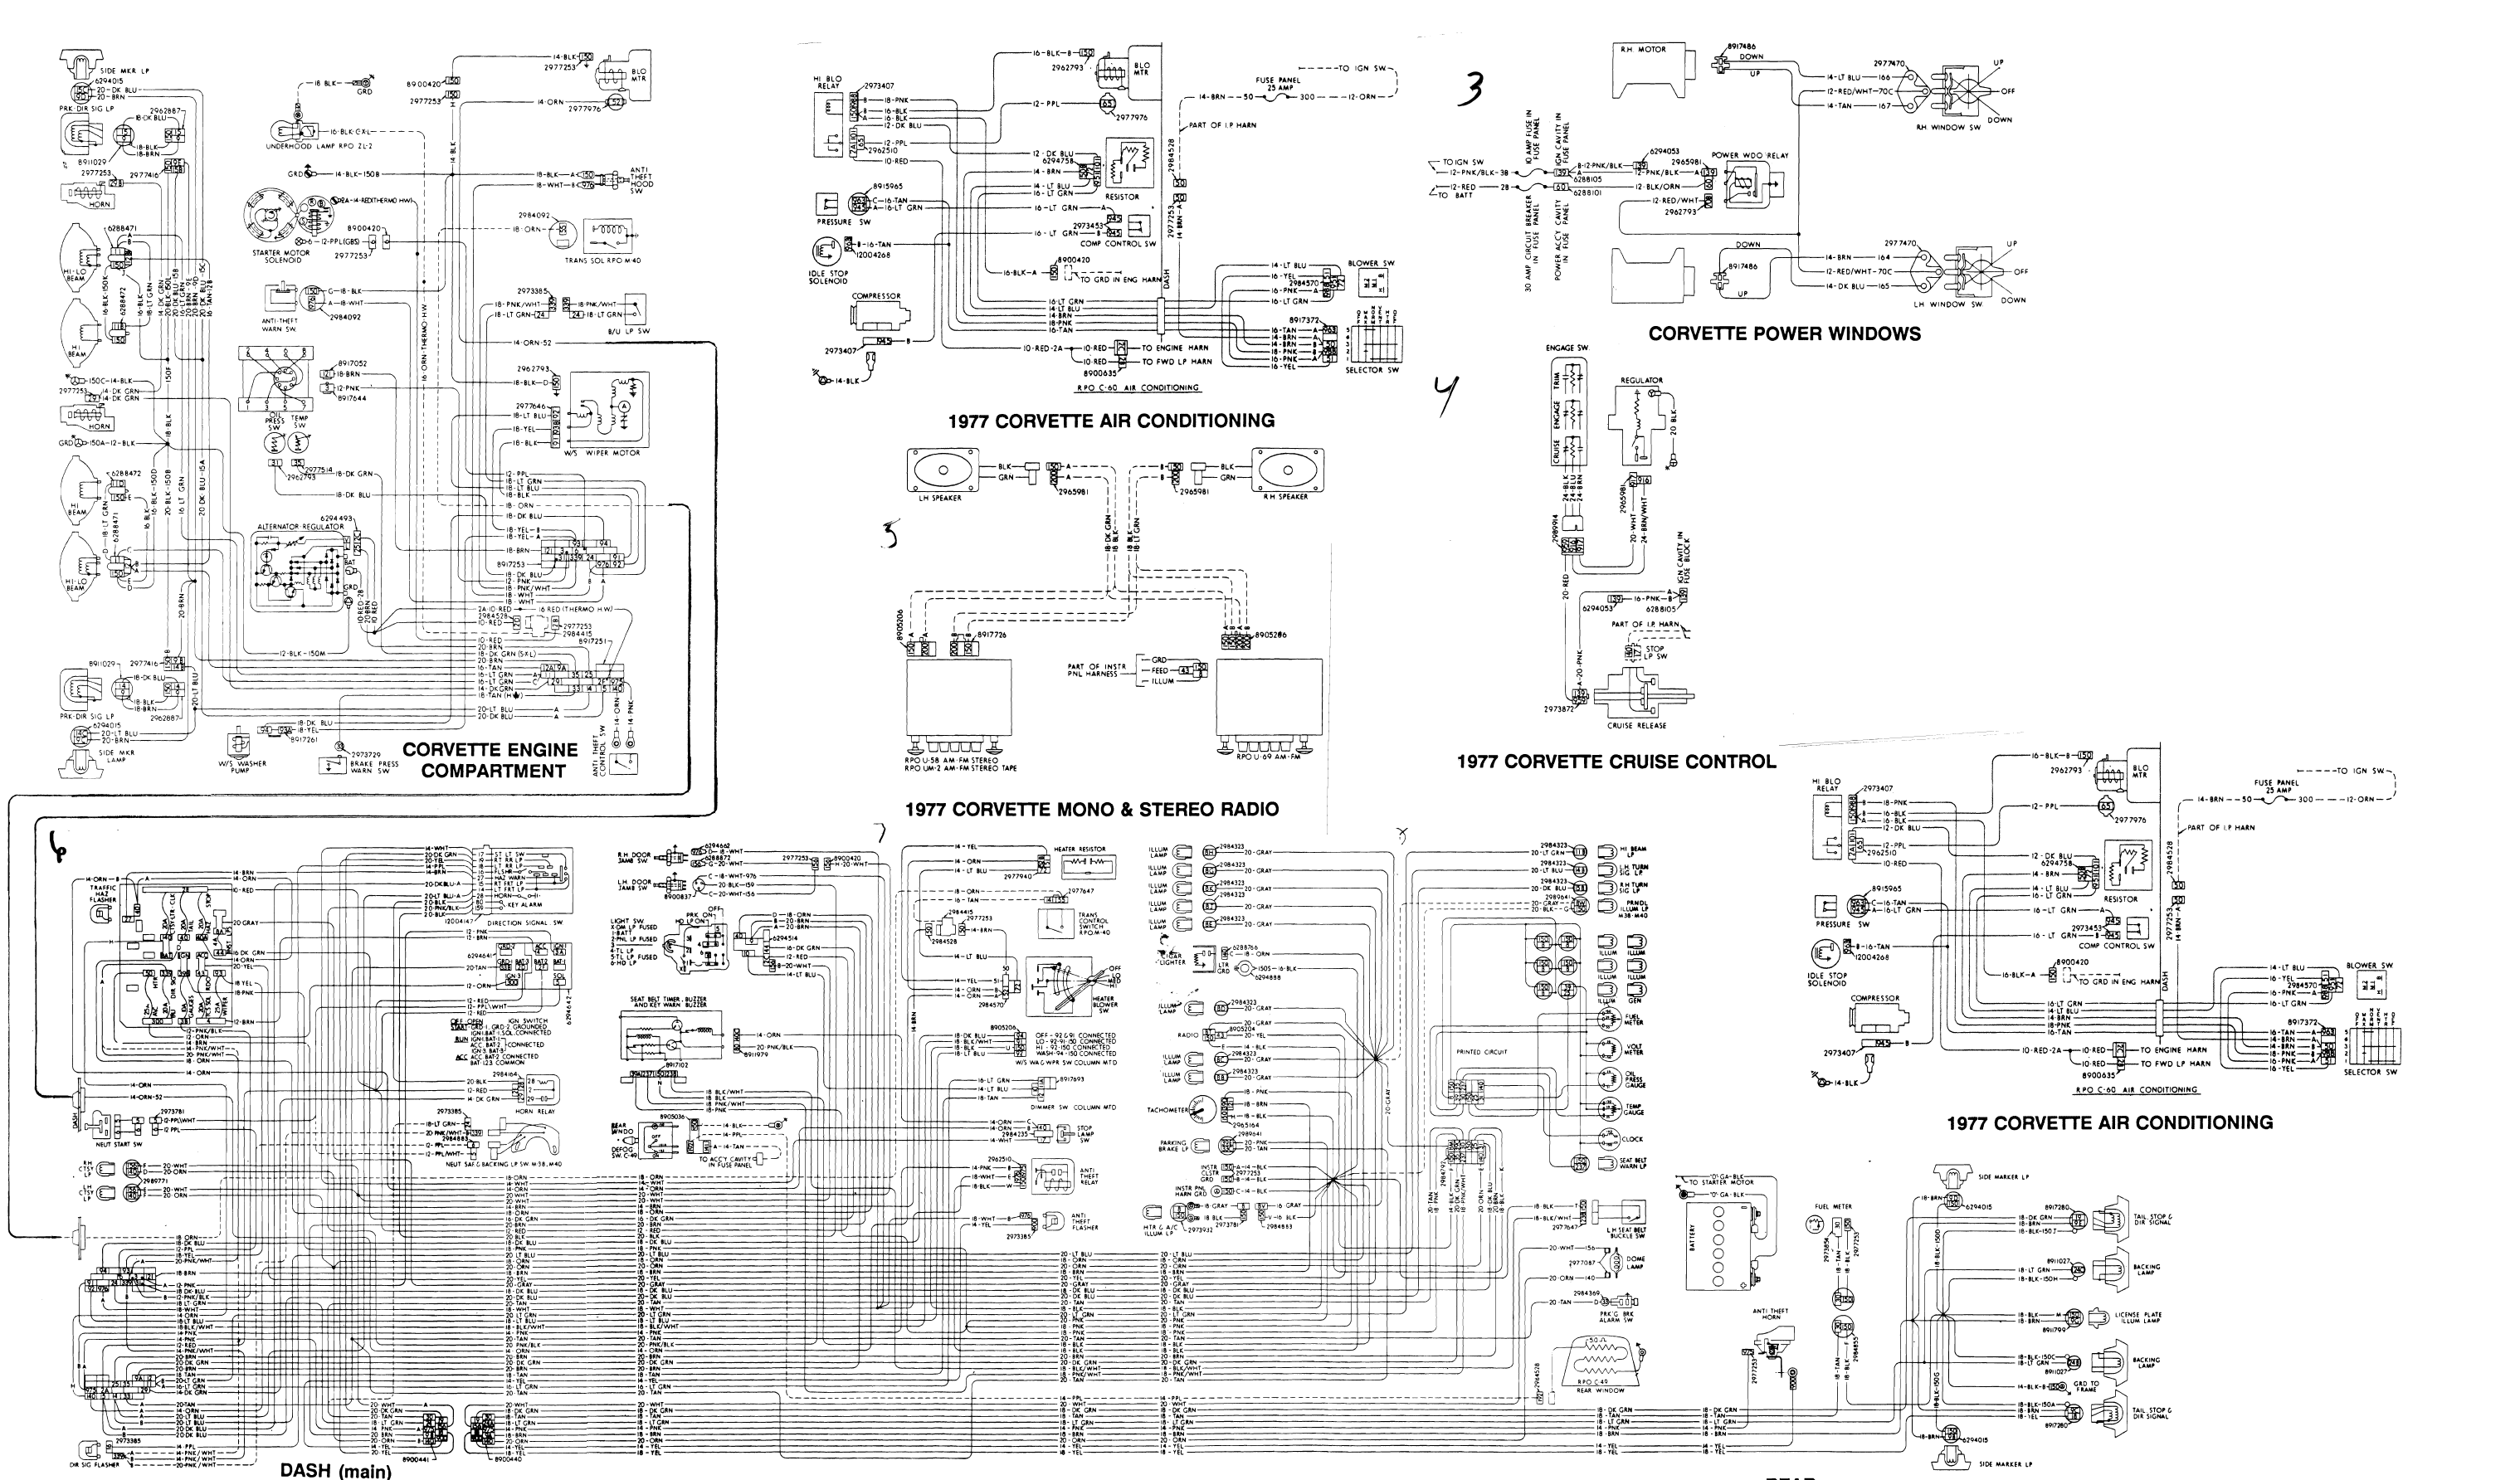 1977 trace harness website 1974 corvette tracer wiring diagram tracer schematic willcox 1976 corvette wiring diagram at soozxer.org